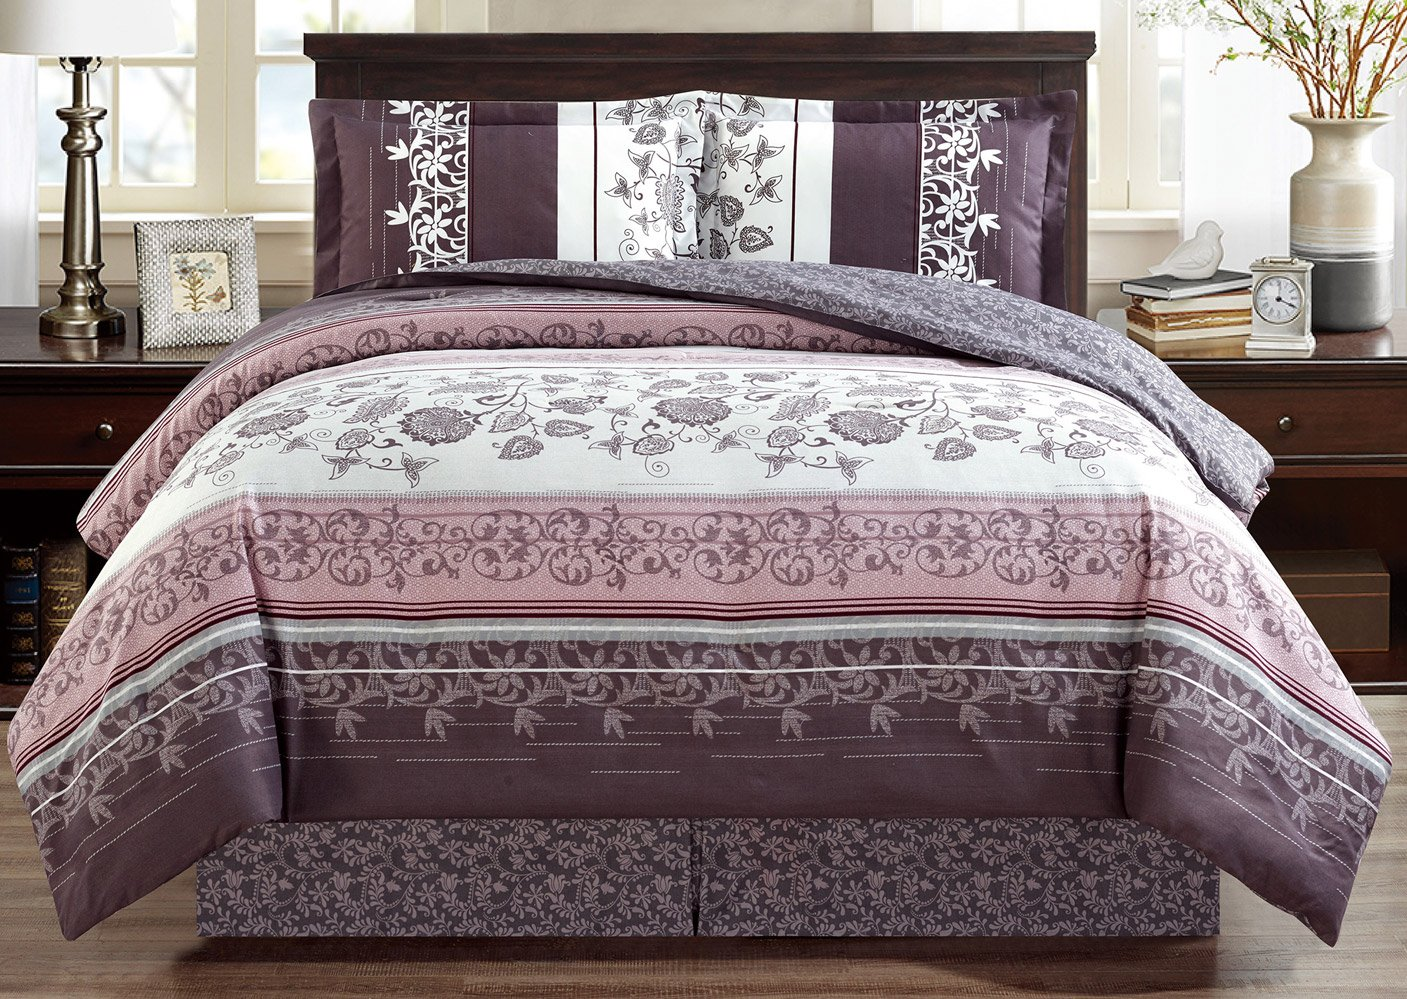 Grand Linen 4-Piece Fine Printed Oversize Comforter Set Reversible Goose Down Alternative Bedding King Size-Purple. Grey, Black, White, Floral